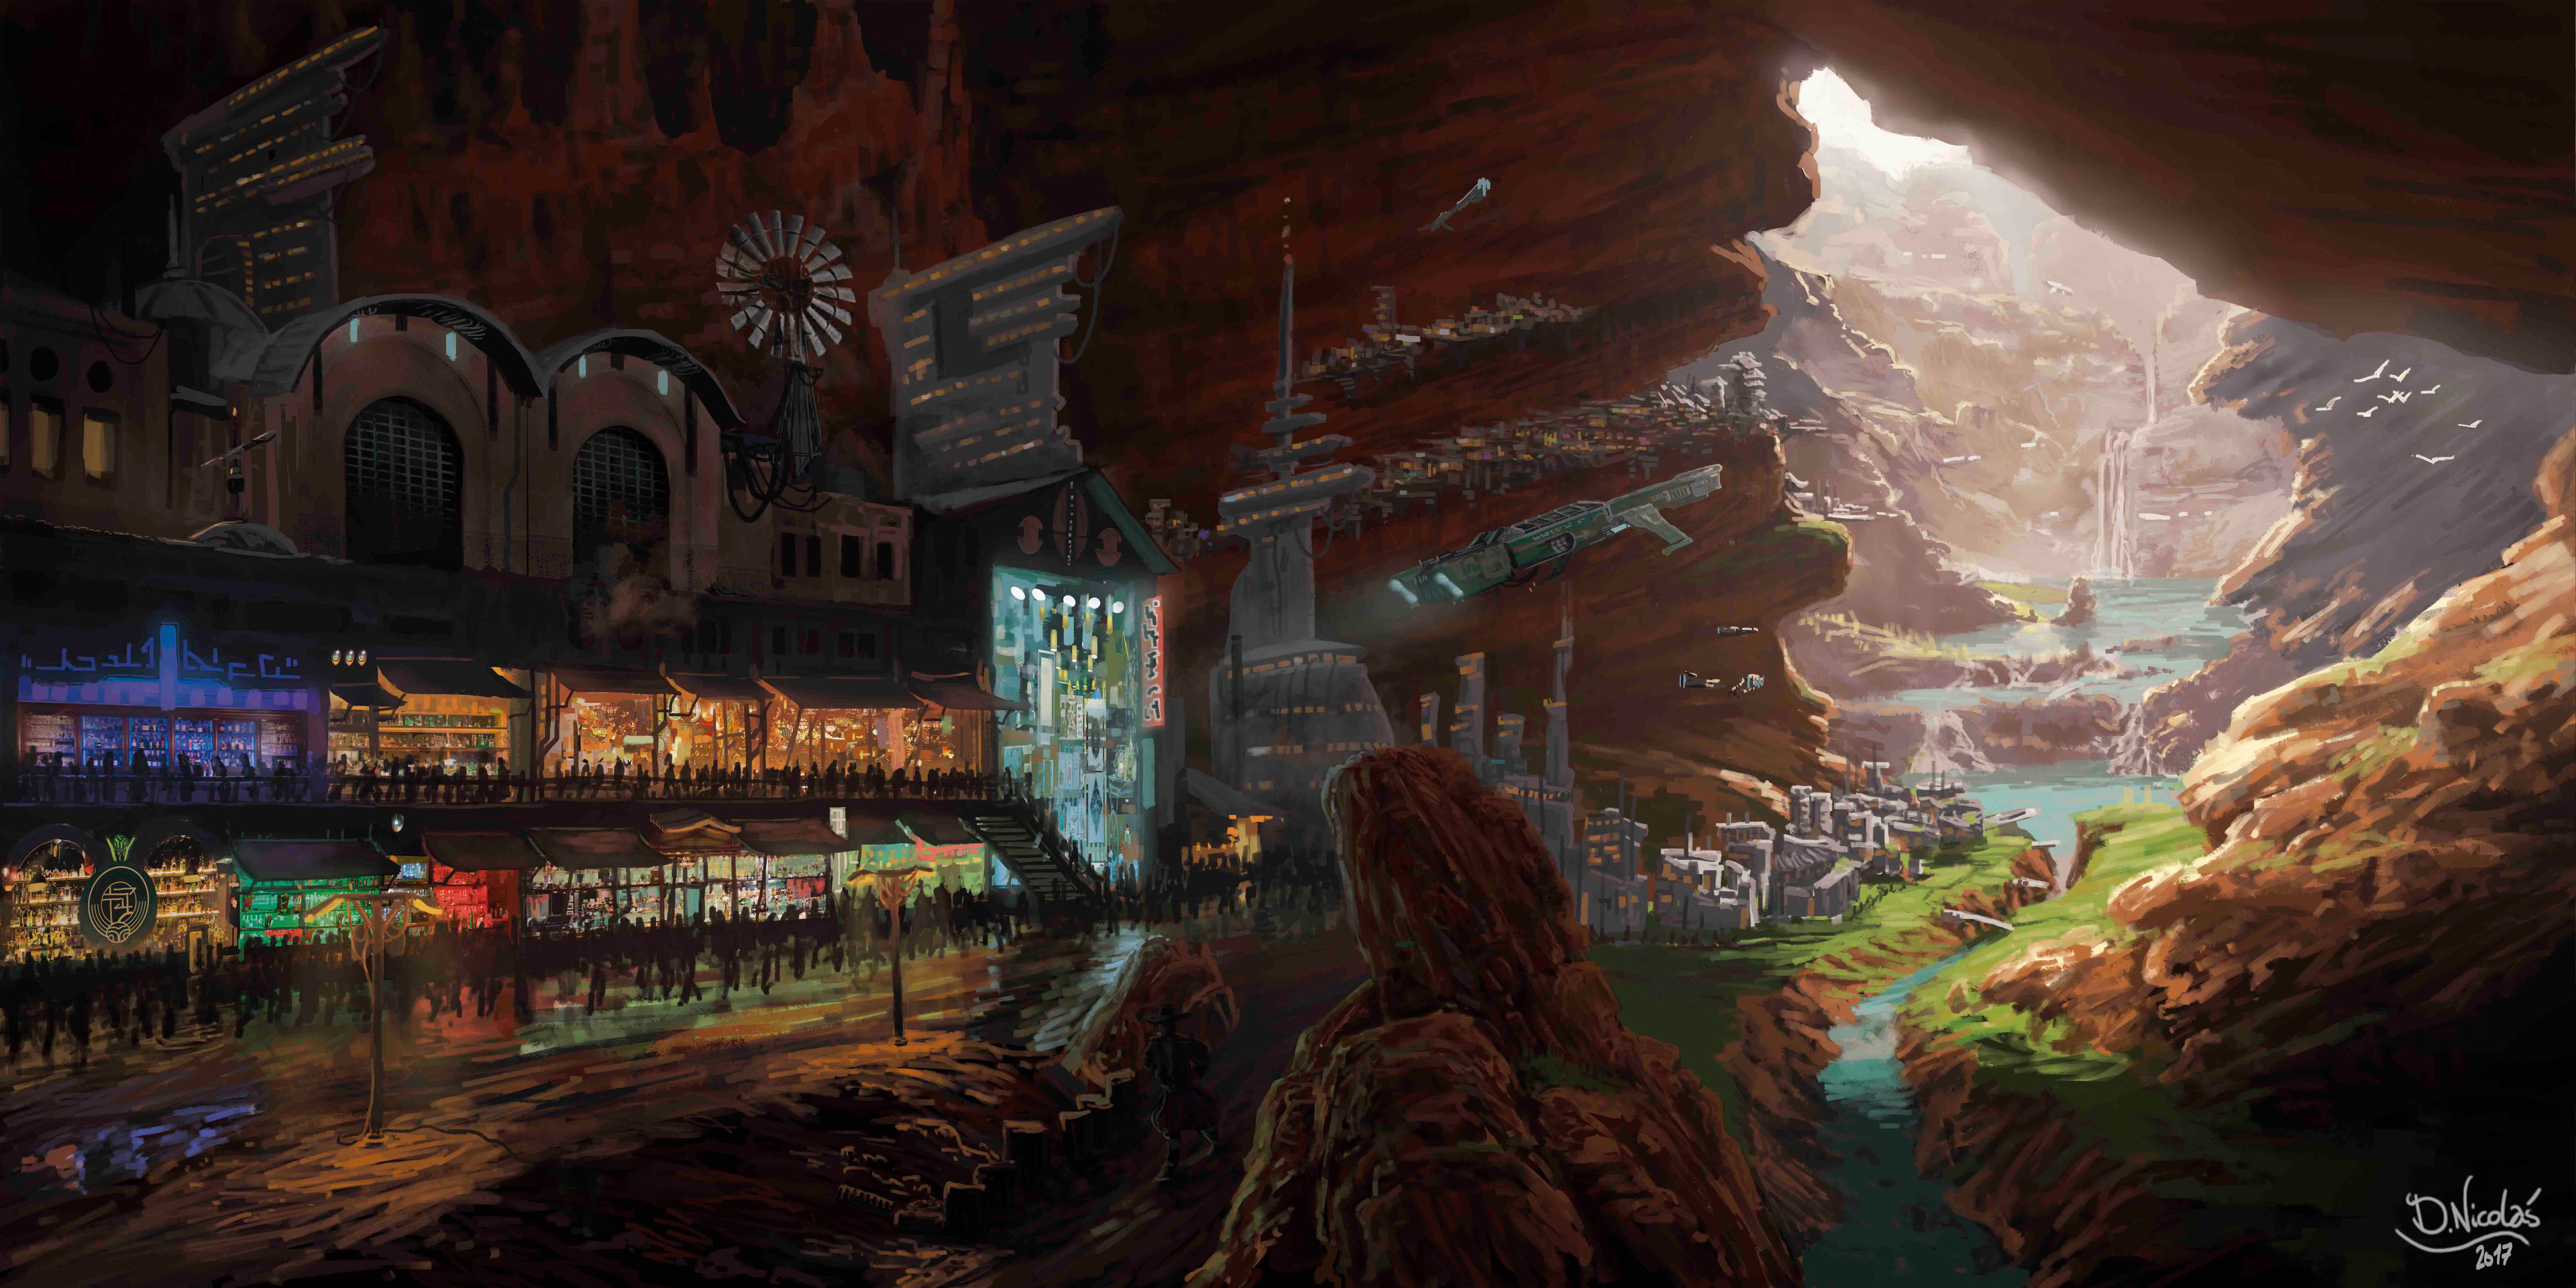 Underground harbor in the cave of the thousand lakes